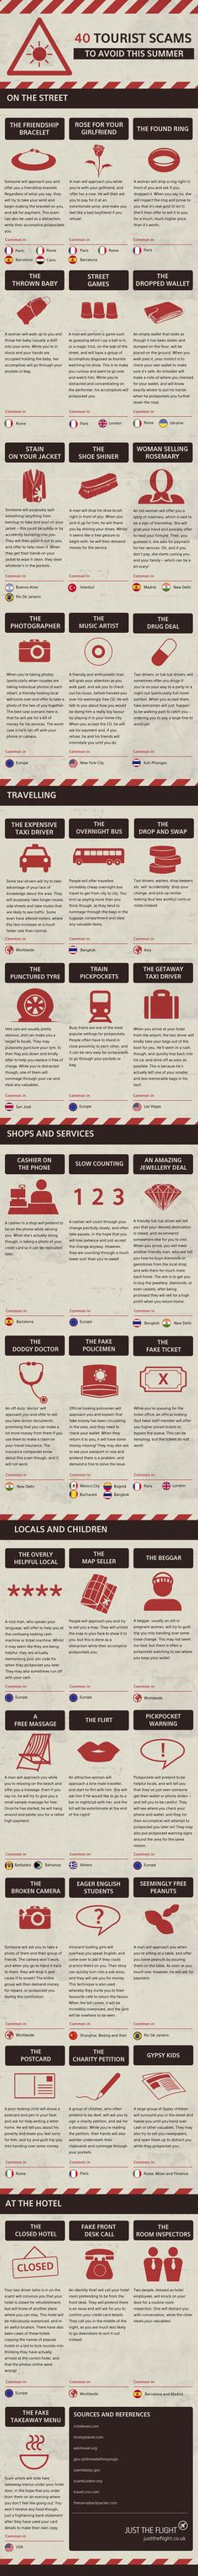 Thinking about traveling this summer? We get warned every year, but watch out for tourist scams when traveling abroad. Check out this very cool infographic that tells you just about every tourist scam in existence. Travel Info, Travel Bugs, Travel Advice, Time Travel, Travel Hacks, Summer Travel, Travel Guide, Travel Plan, Travel Deals